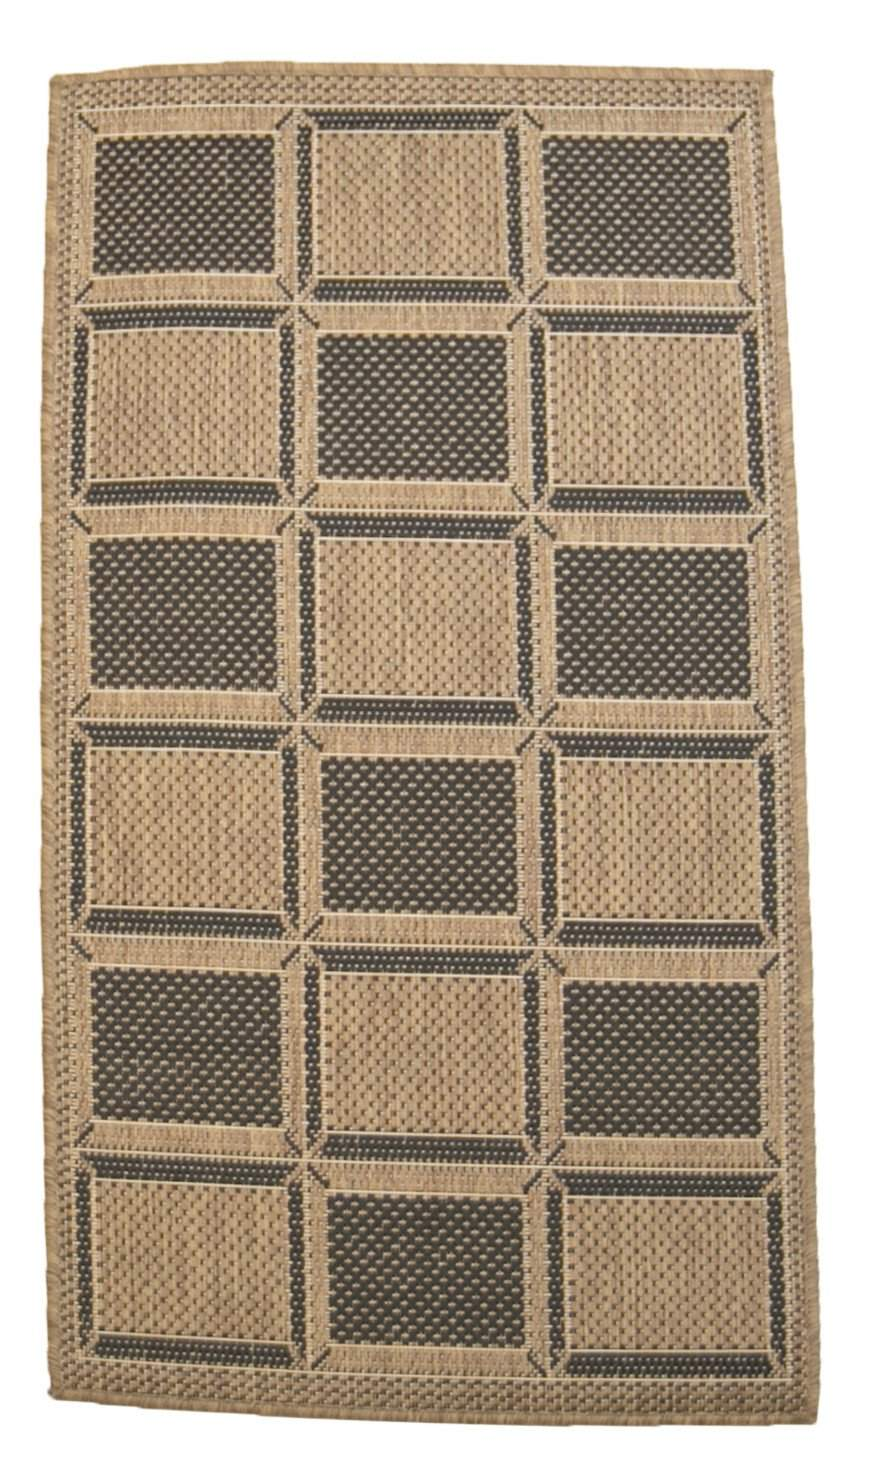 2' x 4' Recife Square Outdoor Small Rug-Area Rugs-Rug Shop and More